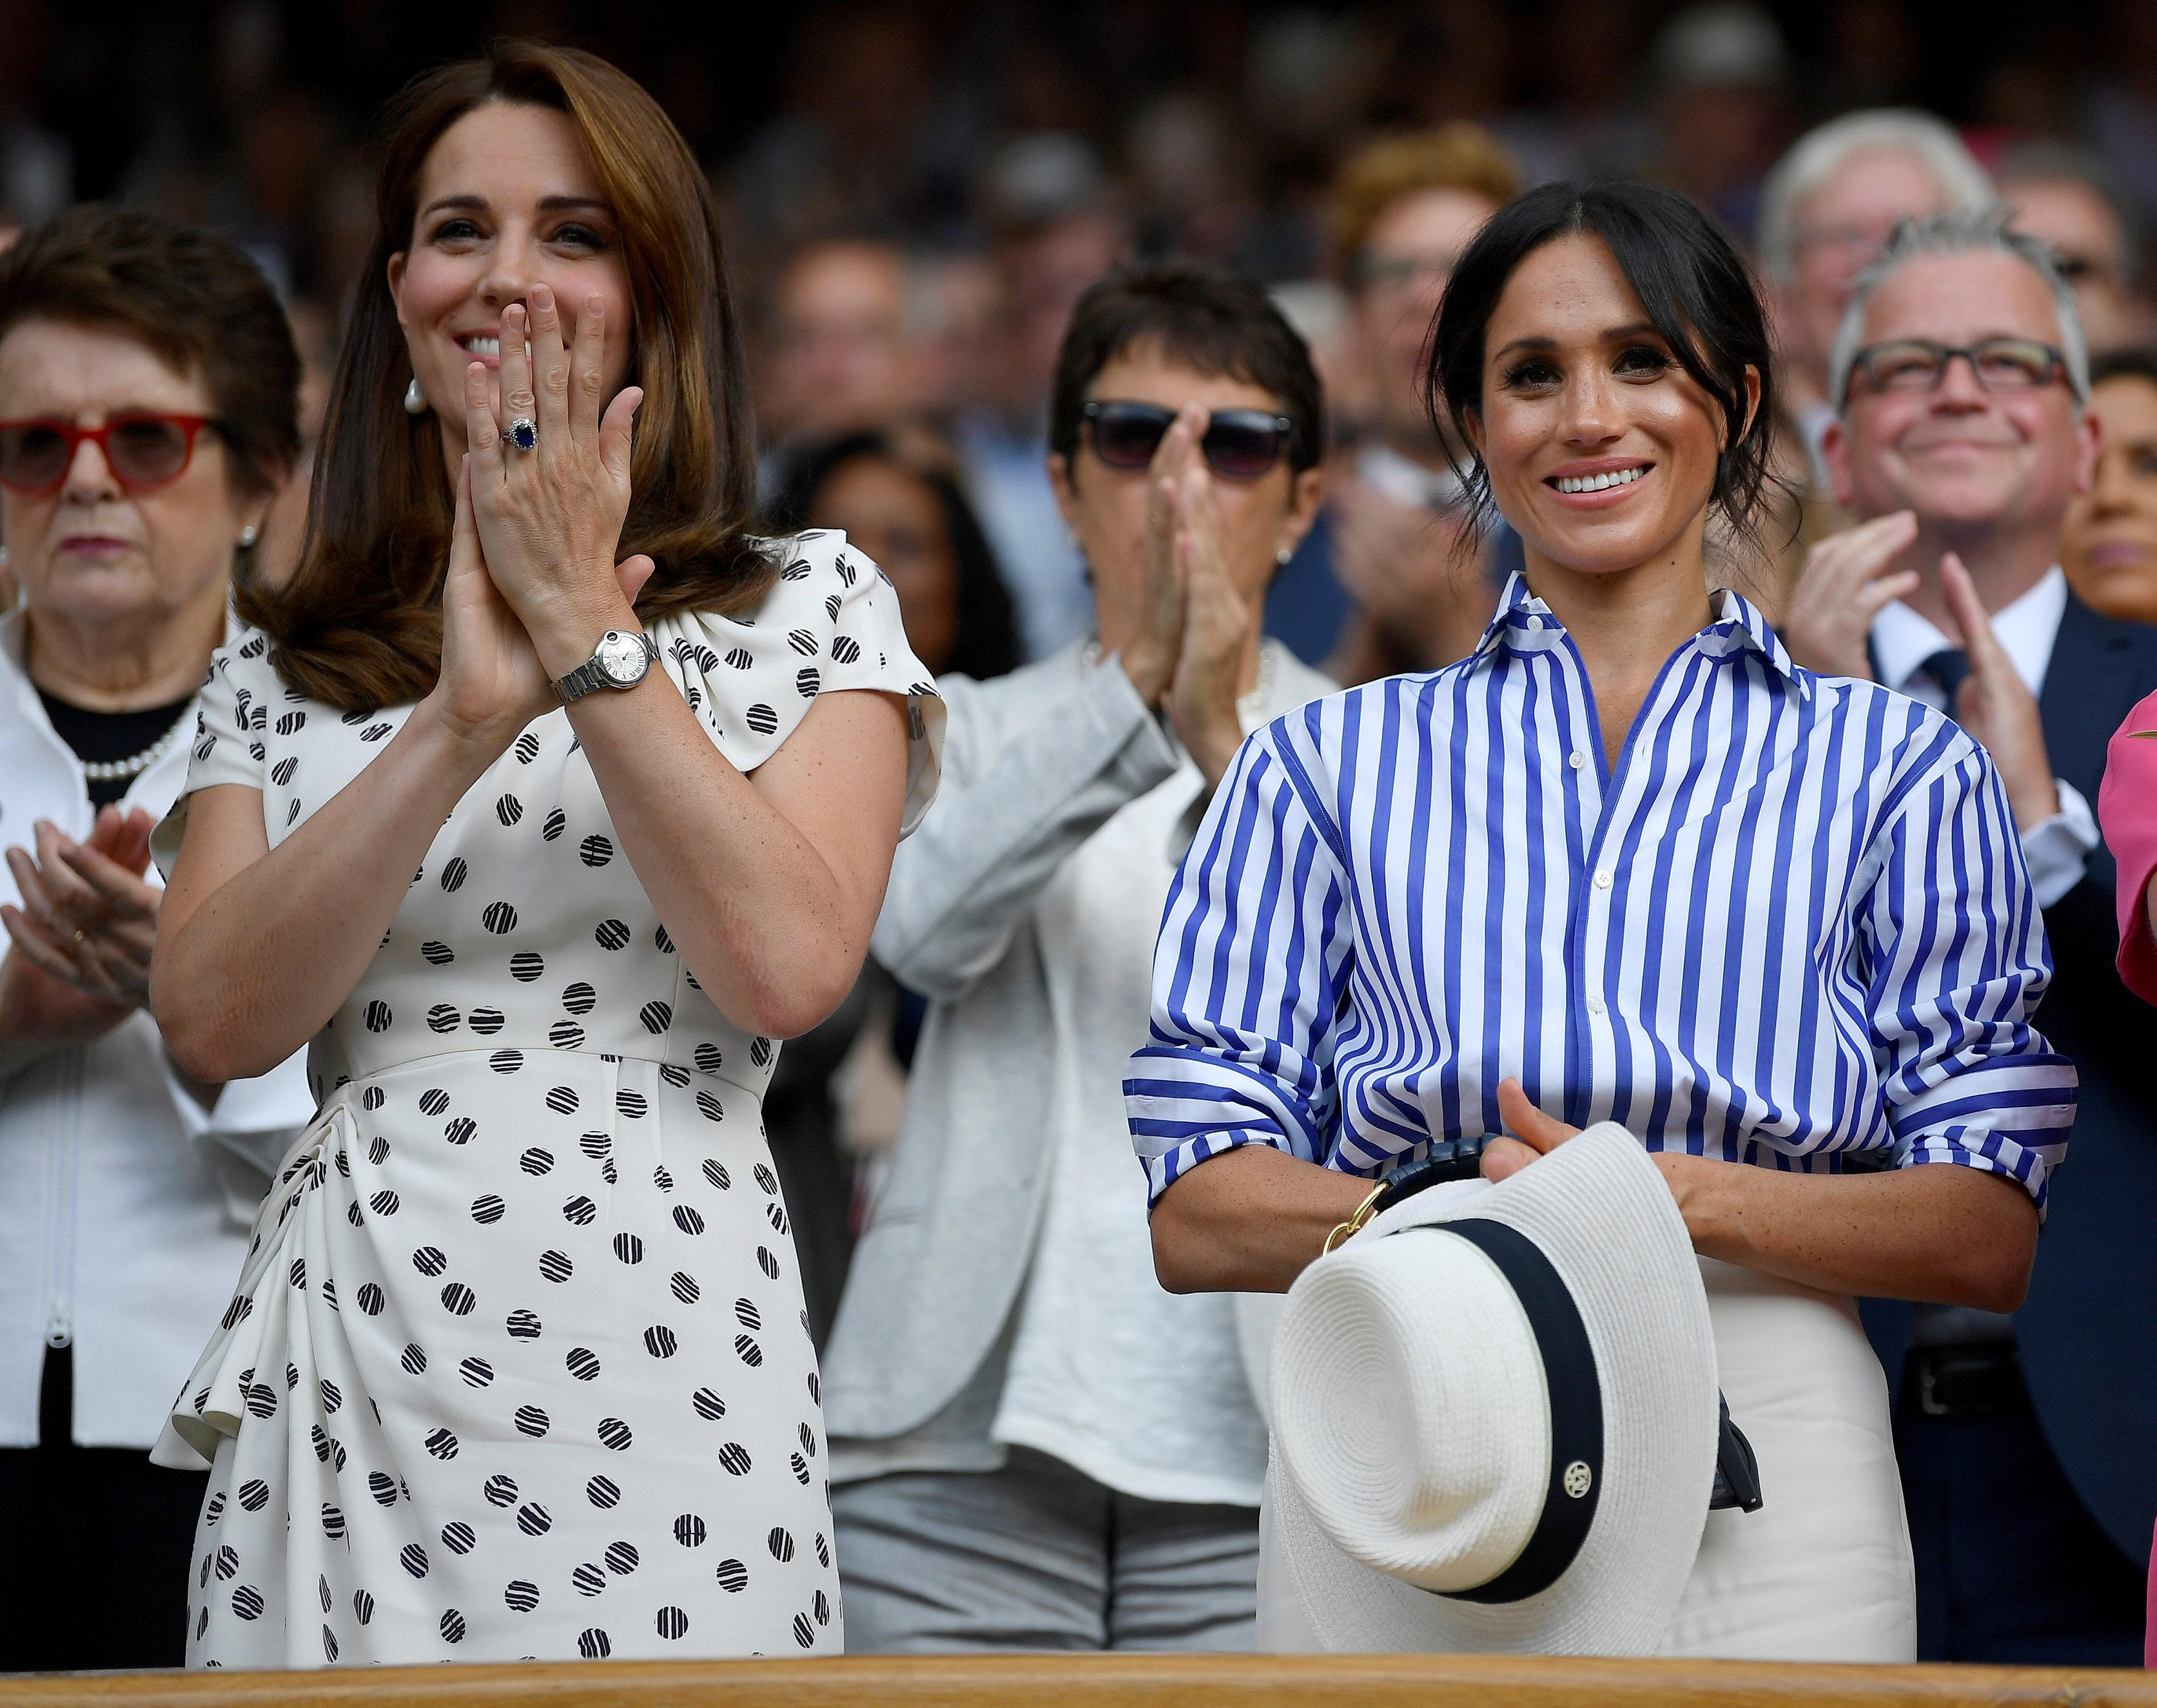 Britain's Catherine, the Duchess of Cambridge, and Meghan, the Duchess of Sussex, applaud after Germany's Angelique Kerber won the women's singles final against Serena Williams of the U.S. at Wimbledon in London, Britain, July 14, 2018. Toby Melville